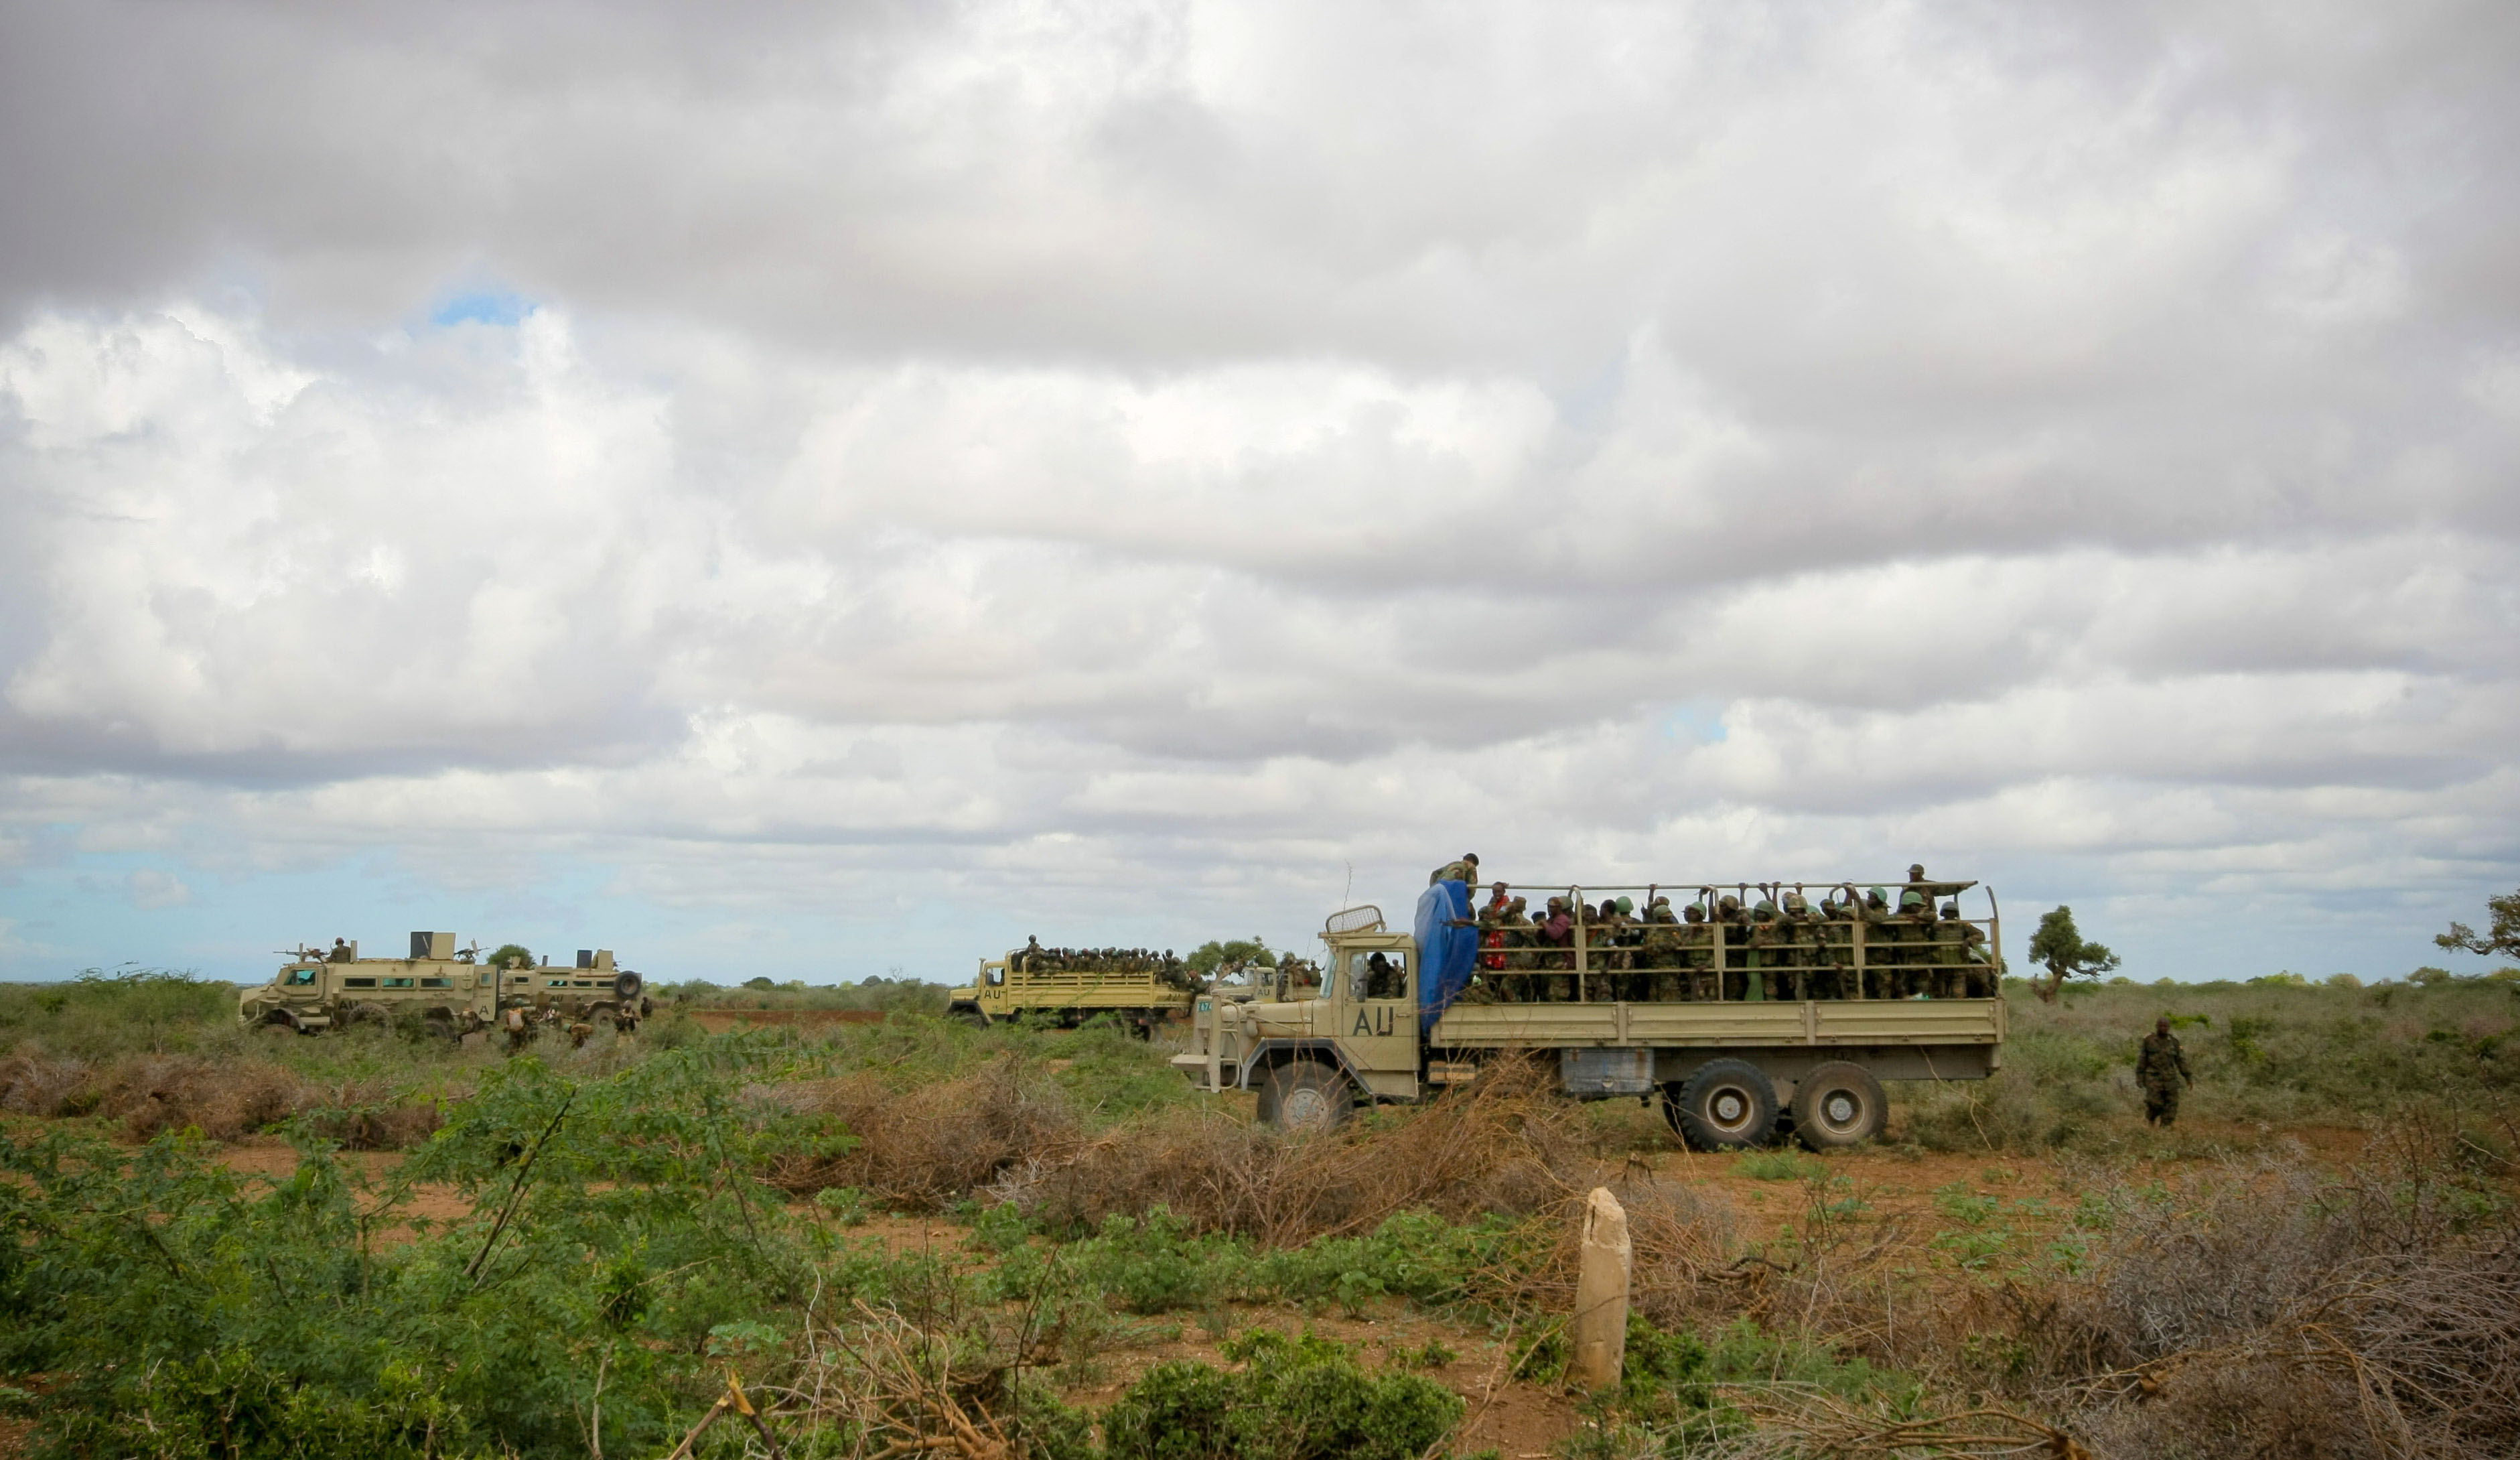 AMISOM & Somali National Army operation to capture Afgoye Corridor Day #5 11, Afgoye, AMISOM, Army, Cloud, HQ Photo